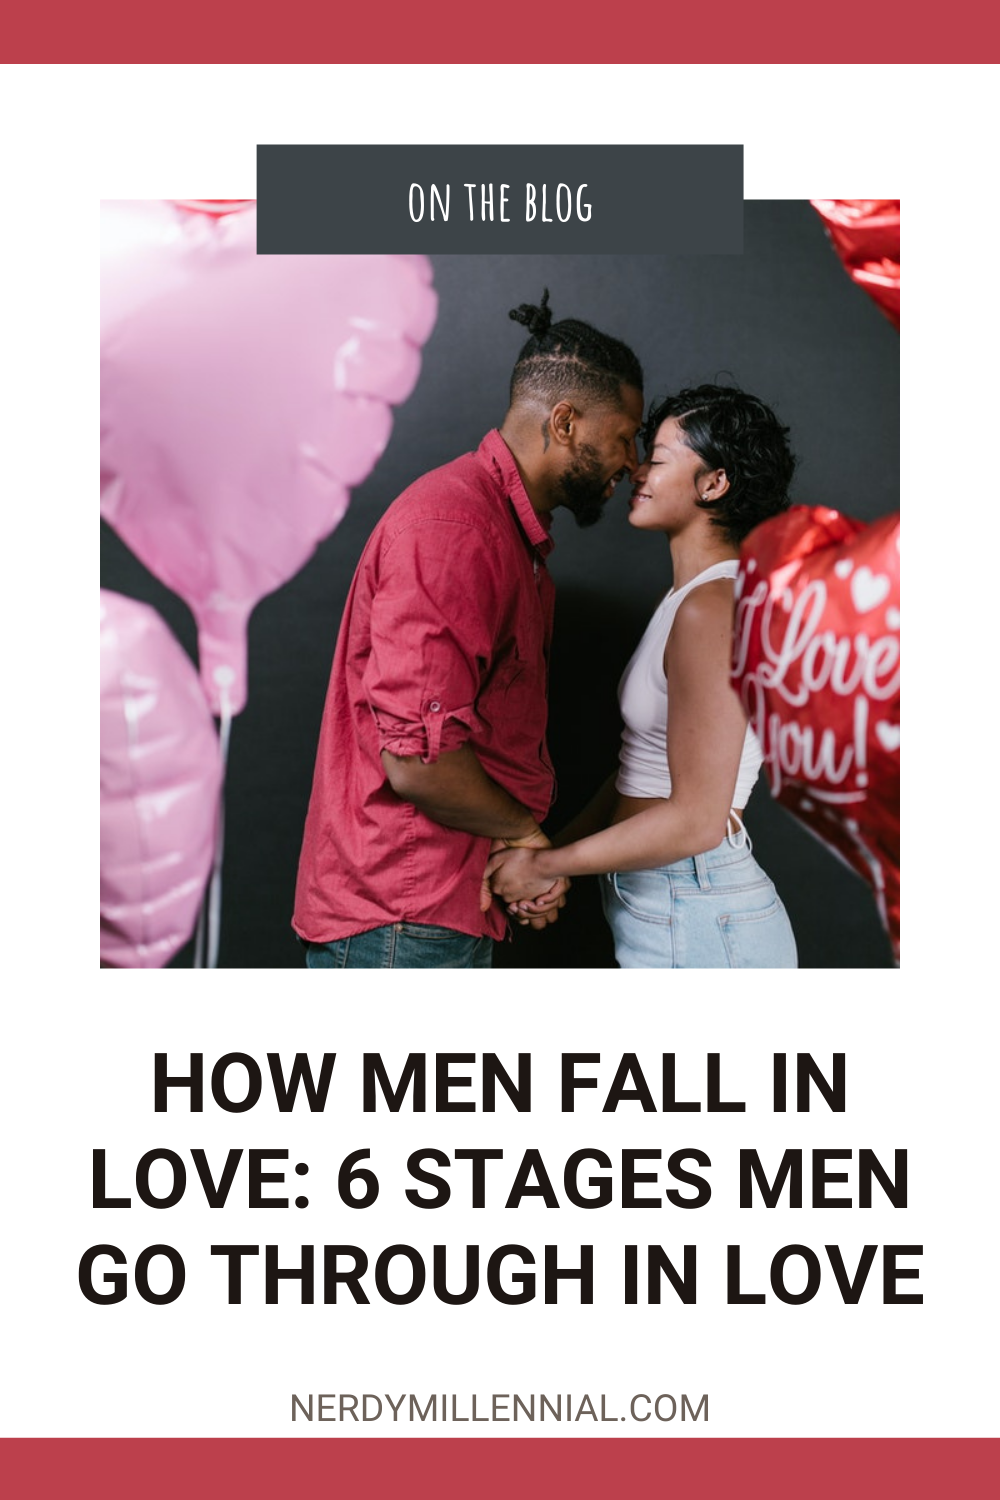 How Men Fall In Love: 6 Stages Men Go Through In Love